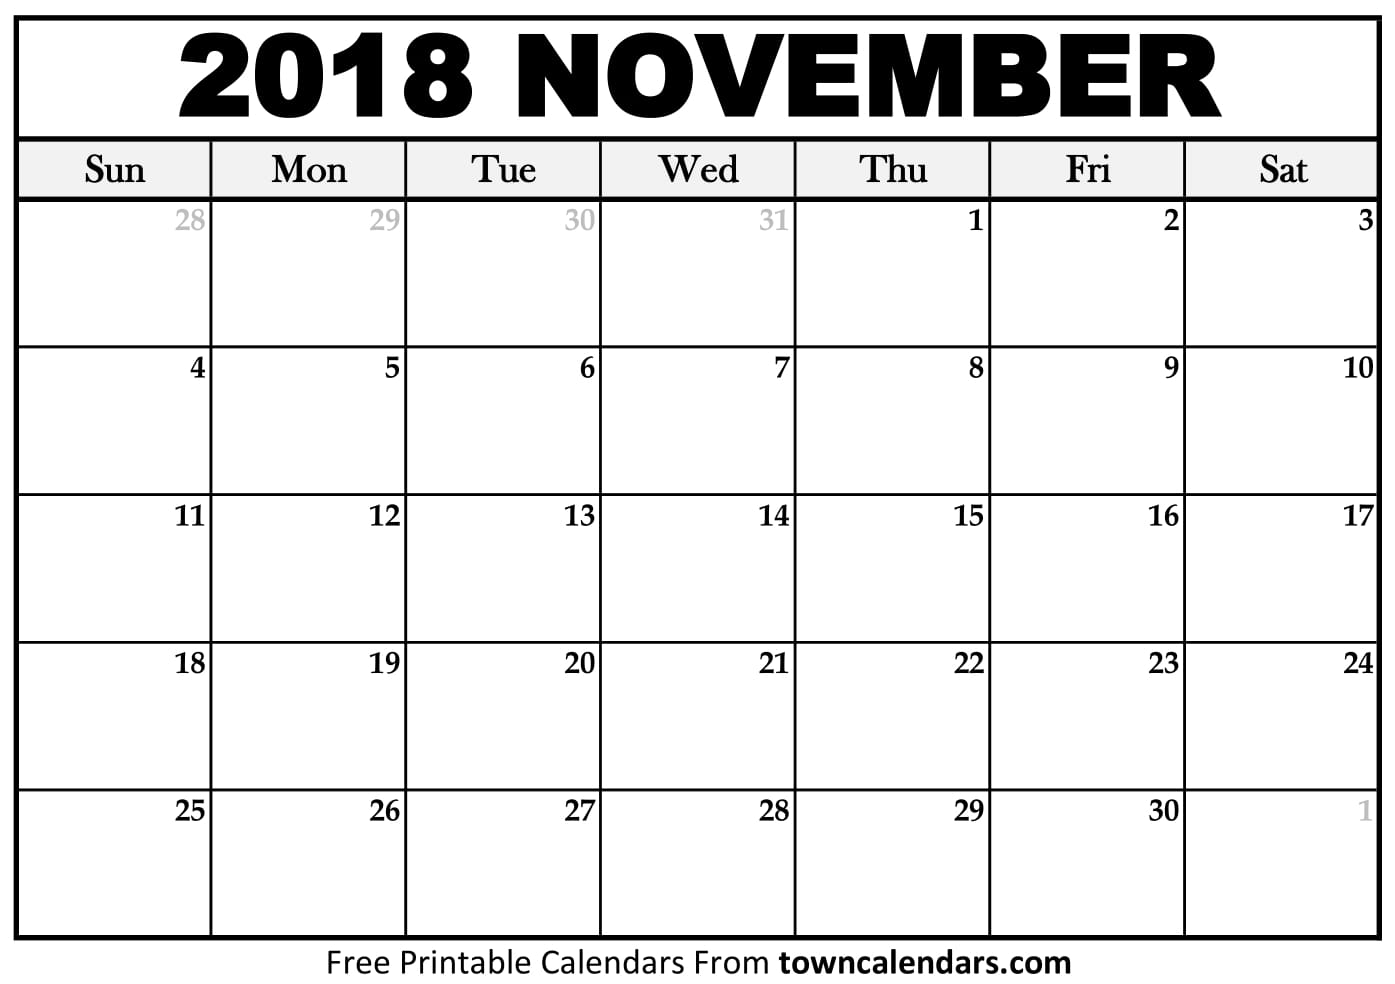 Printable November 2018 Calendar PDF Canada November Calendar Template Holidays Free USA UK